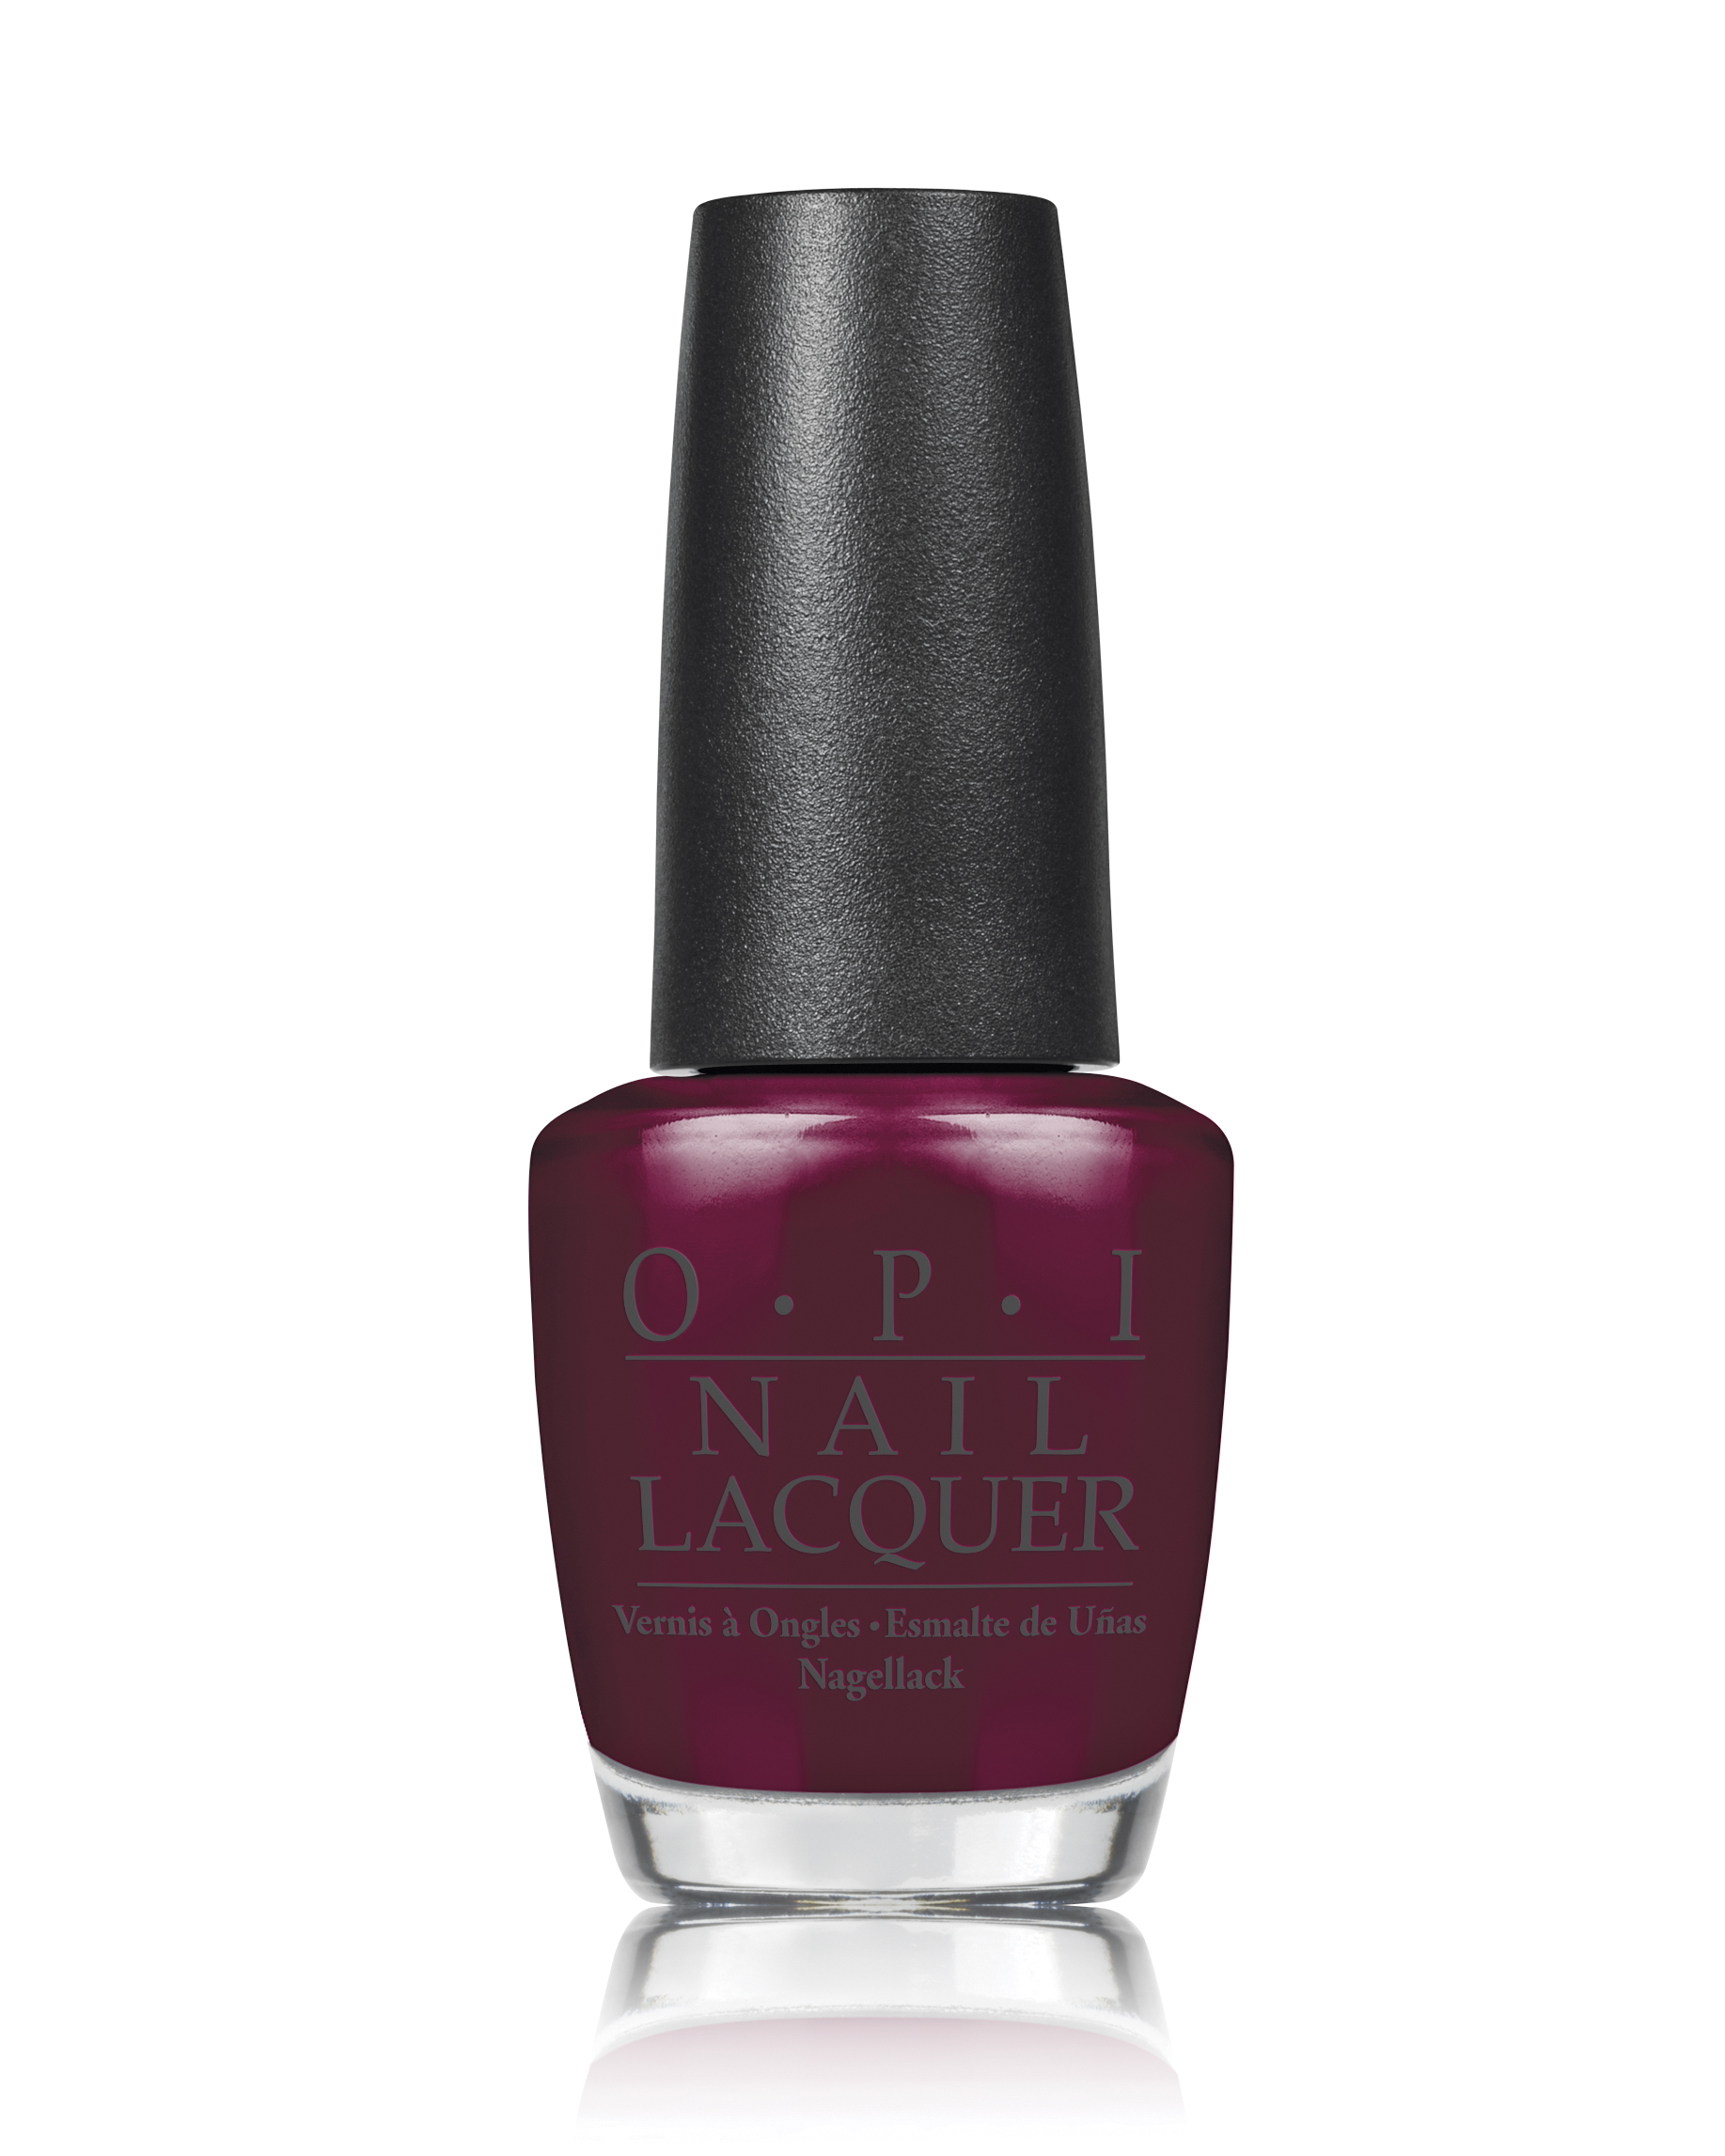 opi-lacquer-0814.jpg